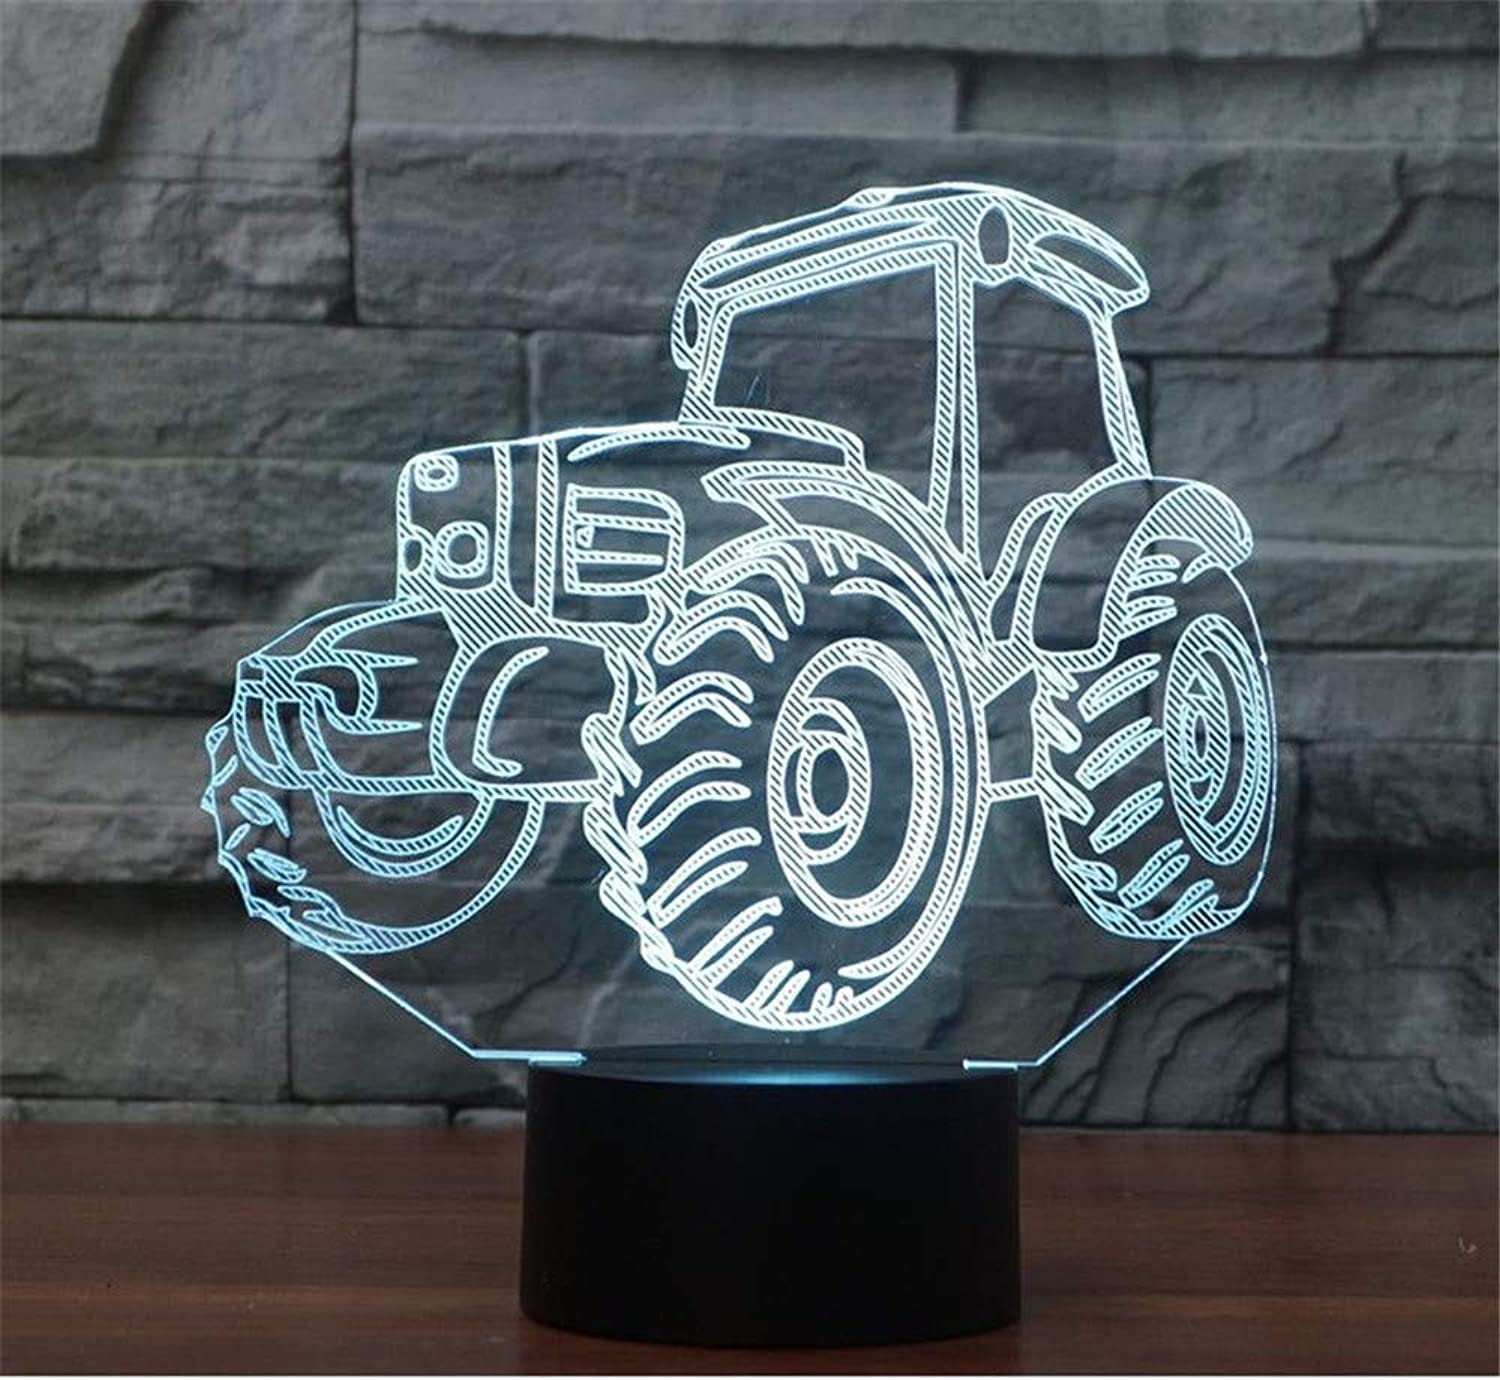 3D LED Night Light Table Desk Lamps 3D Optical Illusion Visual Lamp 7 colors Touch Table Desk Lamp for Christmas Birthday Gift Tractor